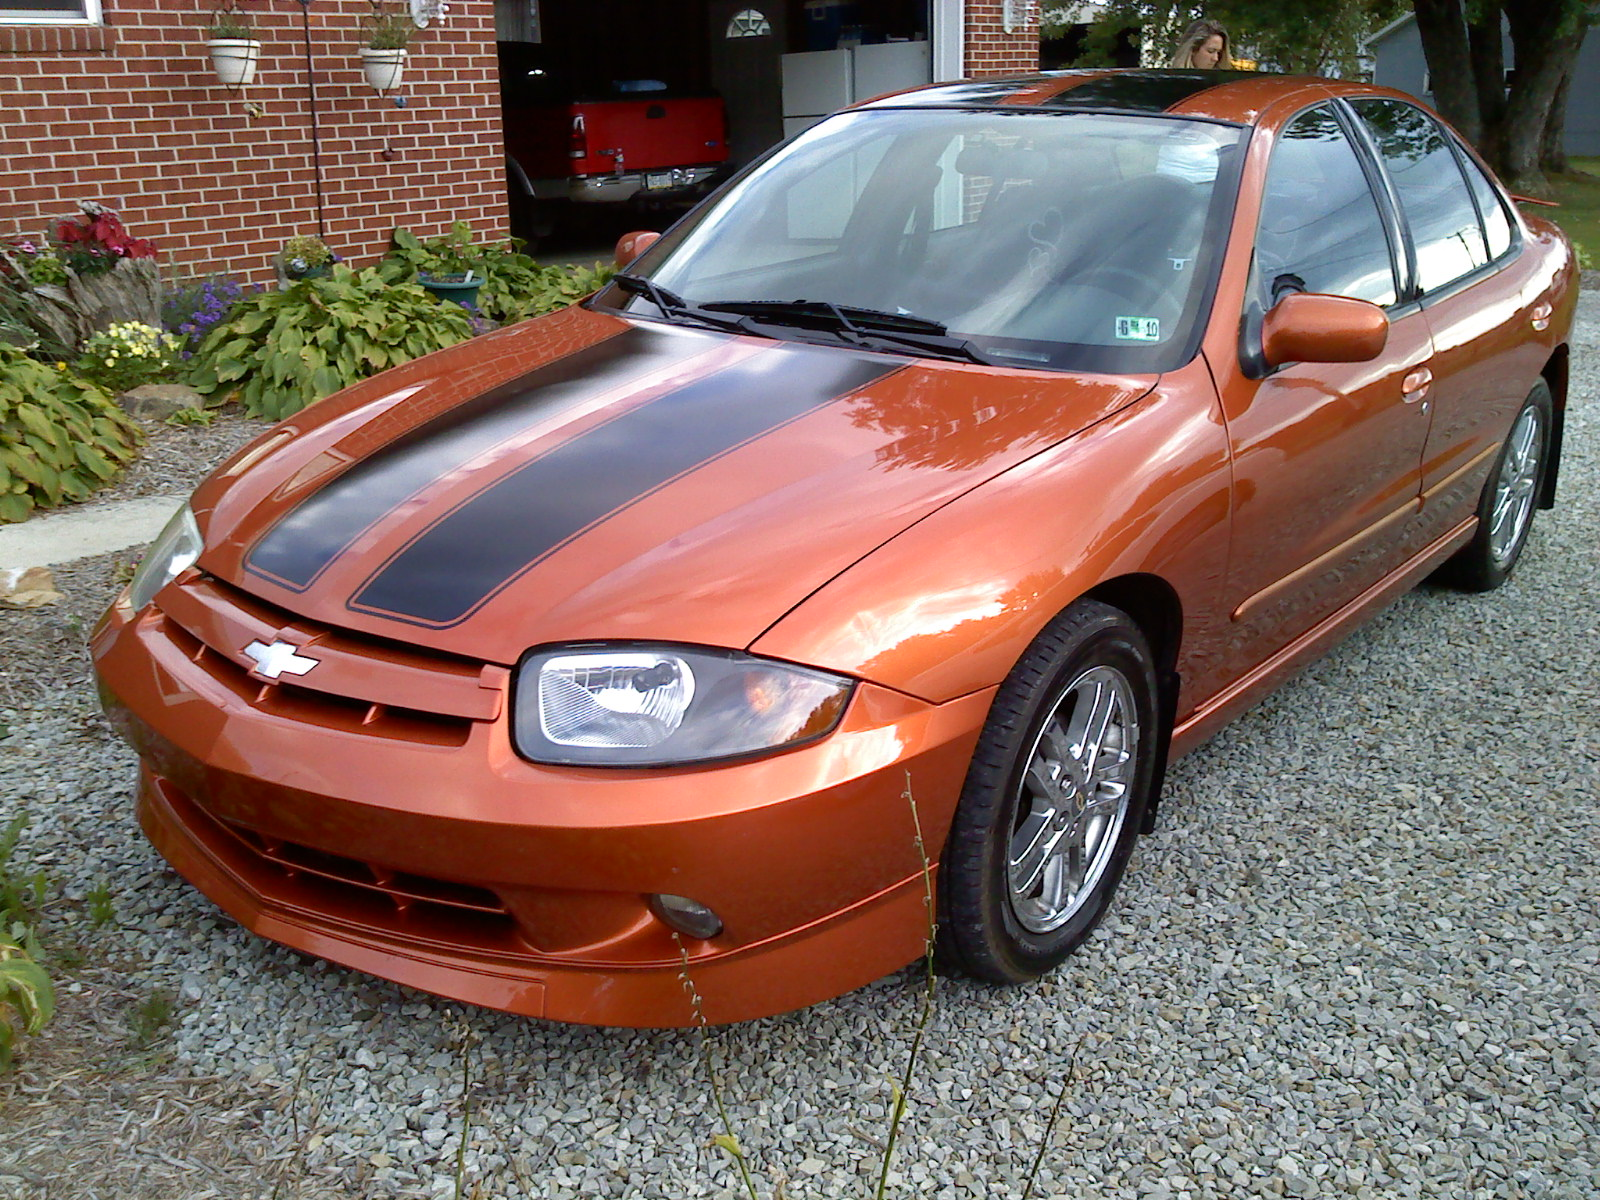 Picture of 2004 Chevrolet Cavalier LS Sport